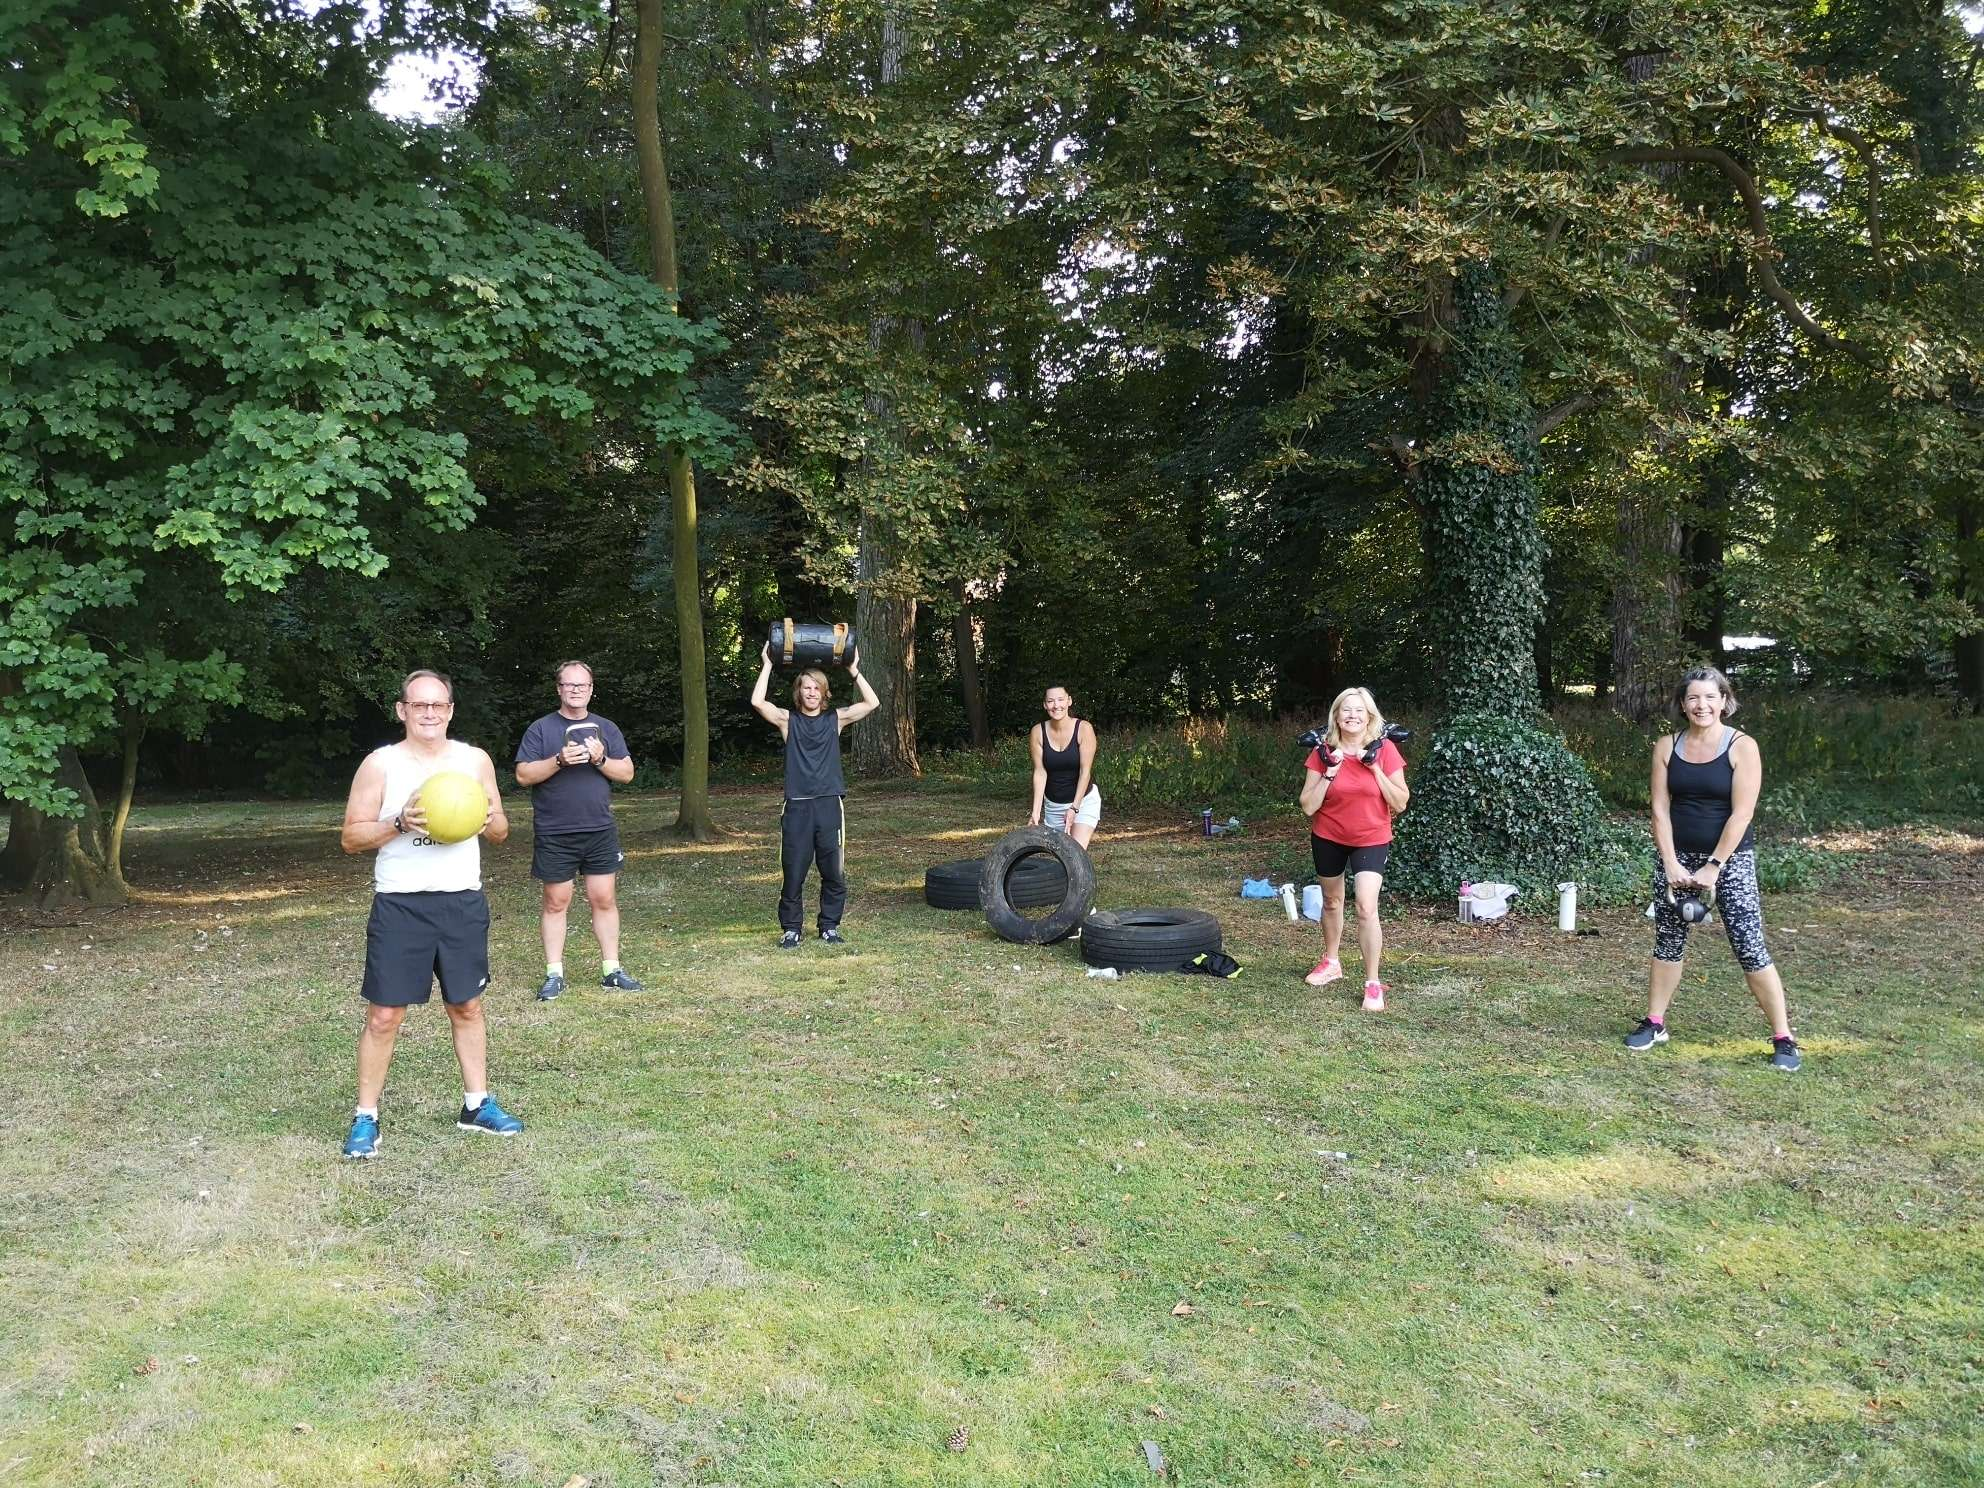 OUTDOOR FITNESS FOR BANNATYNE BURY ST EDMUNDS MEMBERS